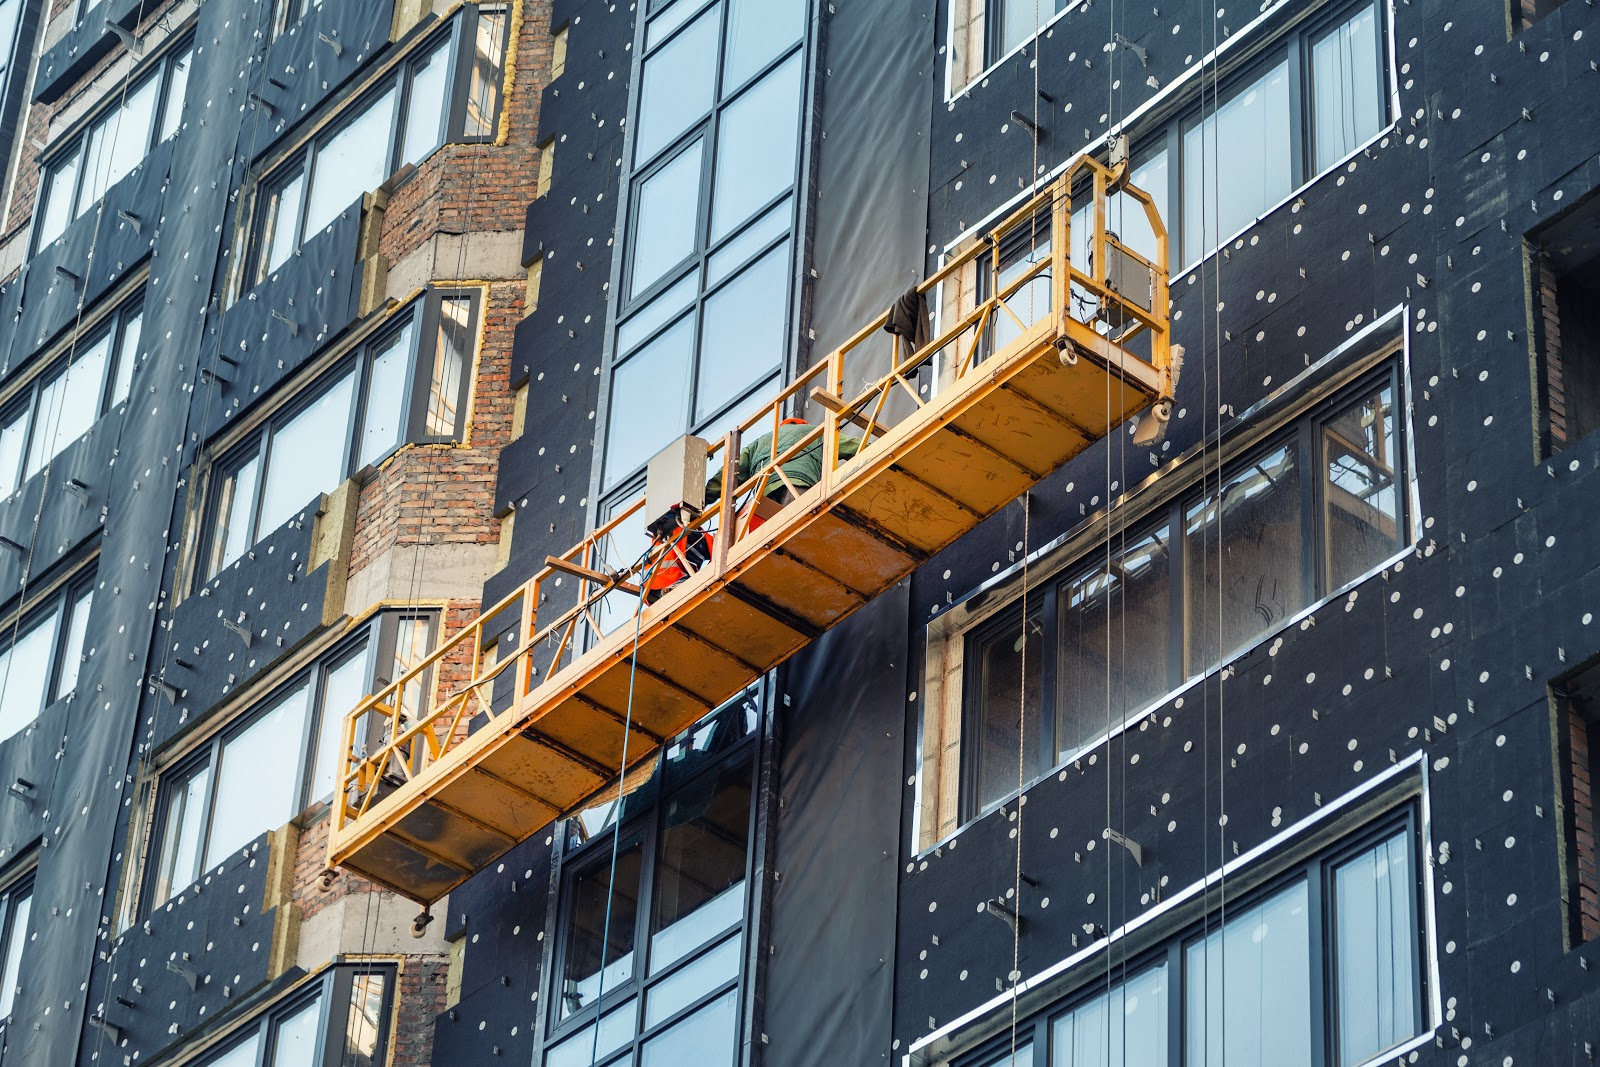 workers outside on elevated swing stage scaffolding platform